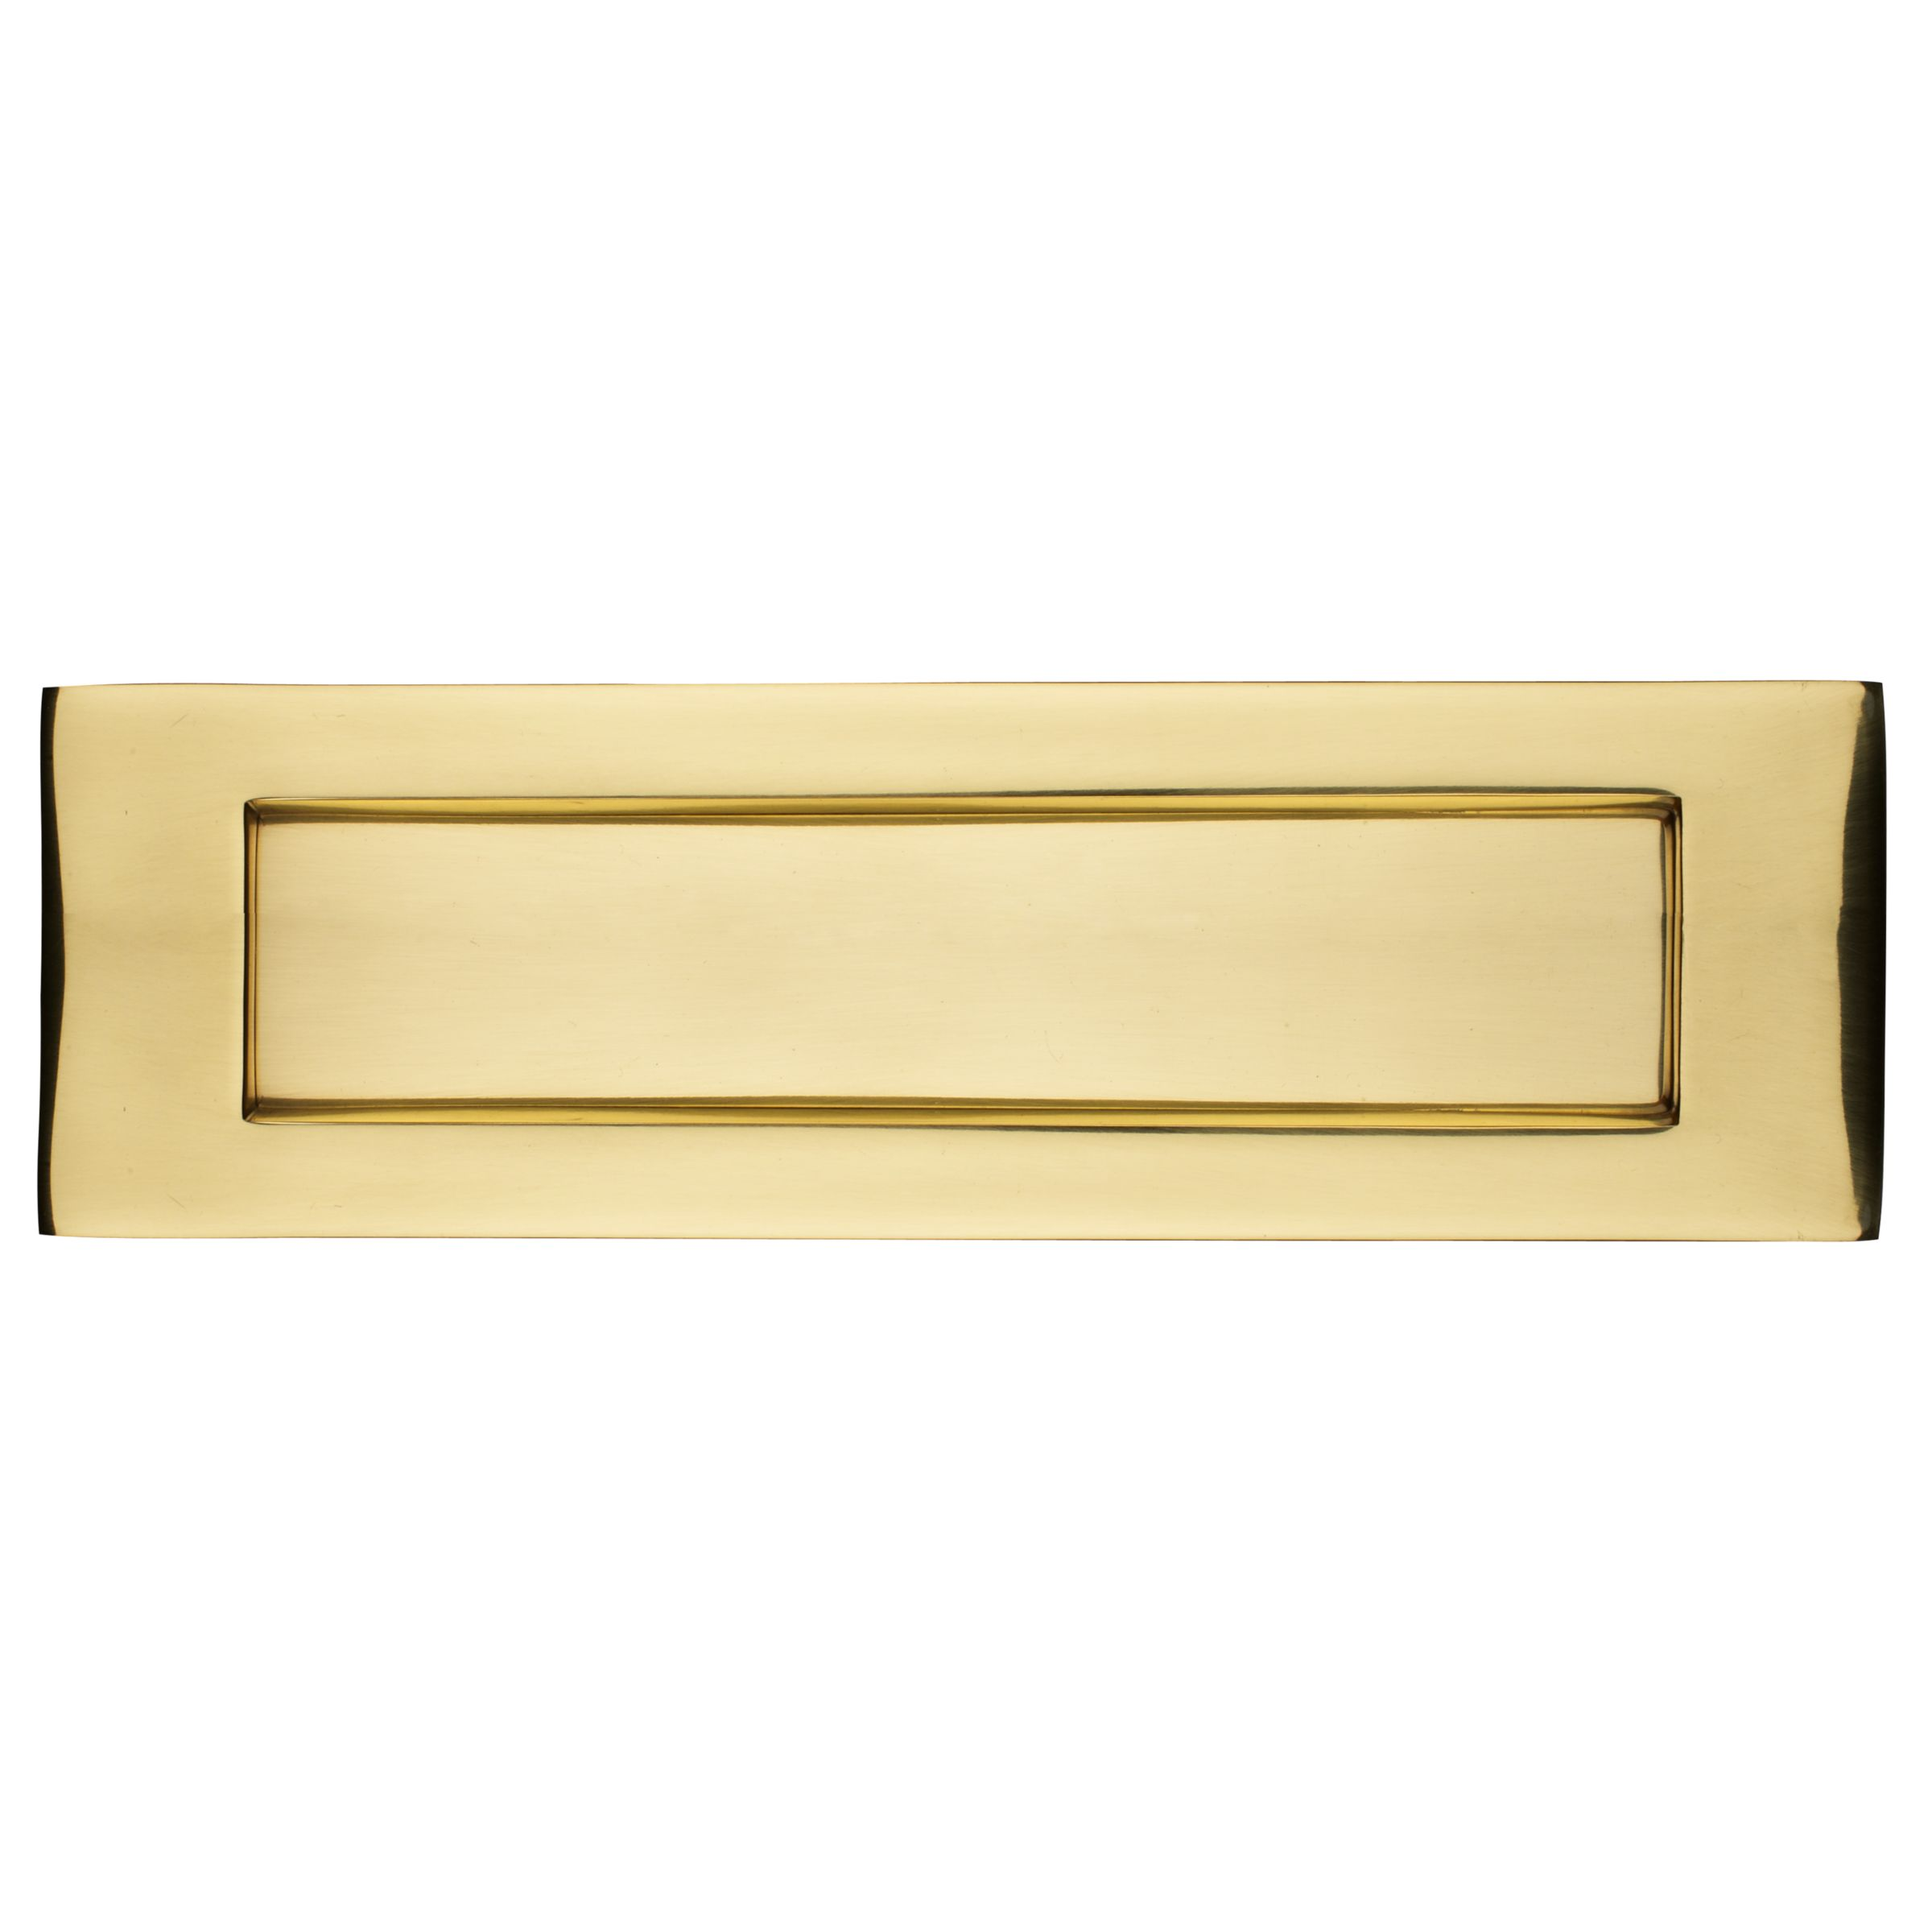 John Lewis Letterbox Plate, Polished Brass